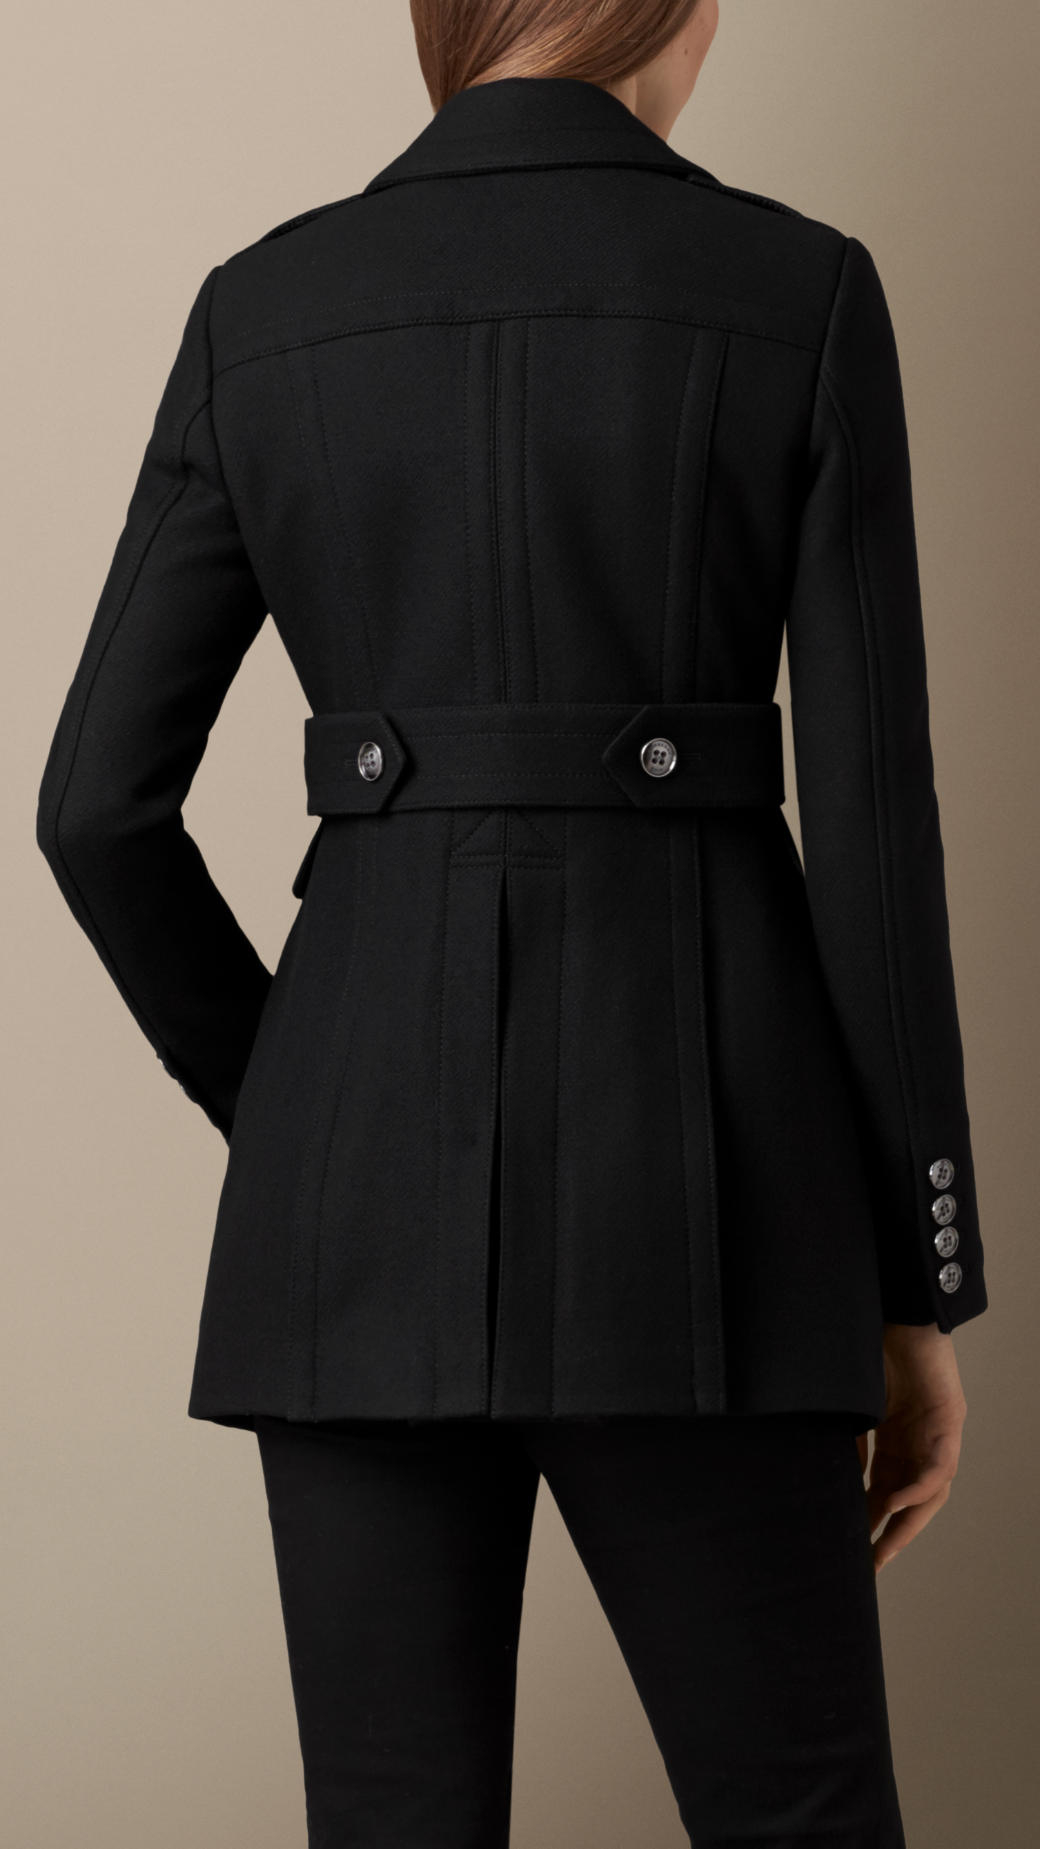 Burberry Fitted Wool Blend Twill Pea Coat in Black | Lyst